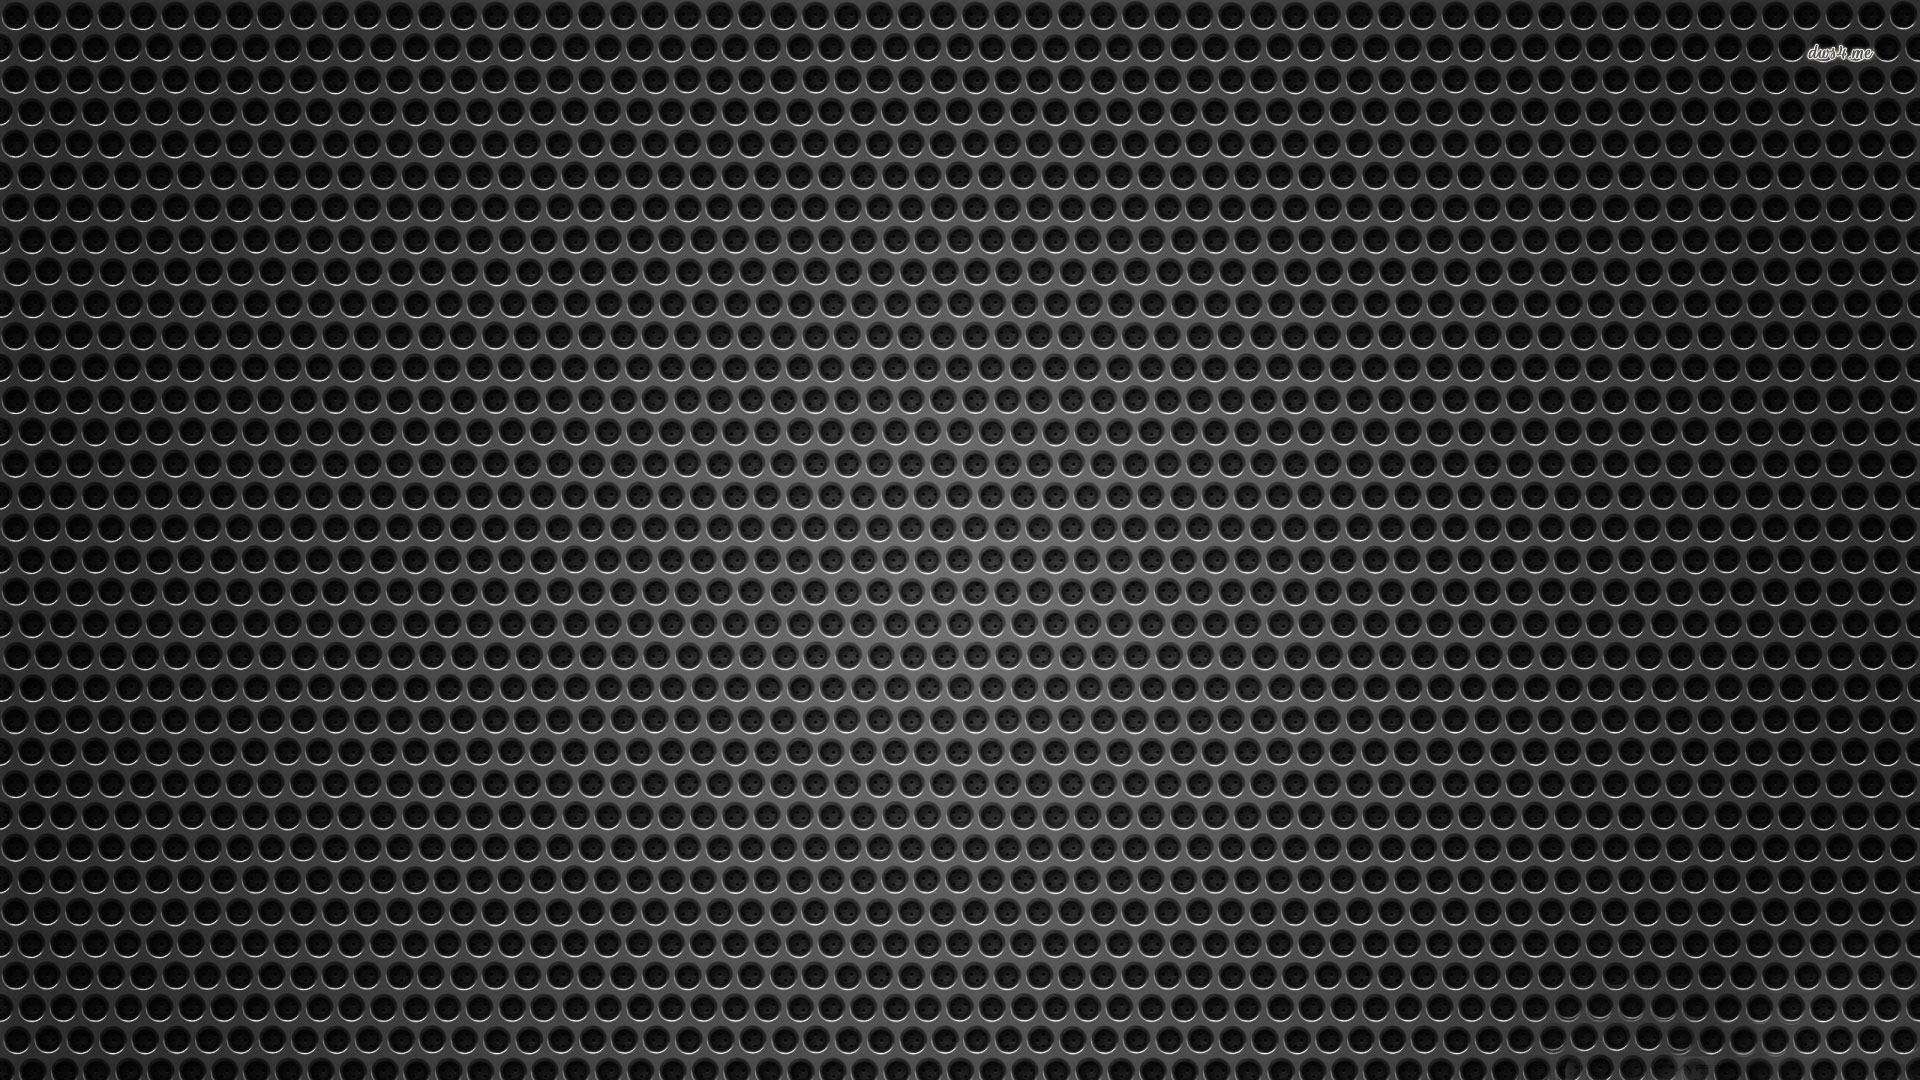 textured wallpaper | Download Metal Grill Texture ...